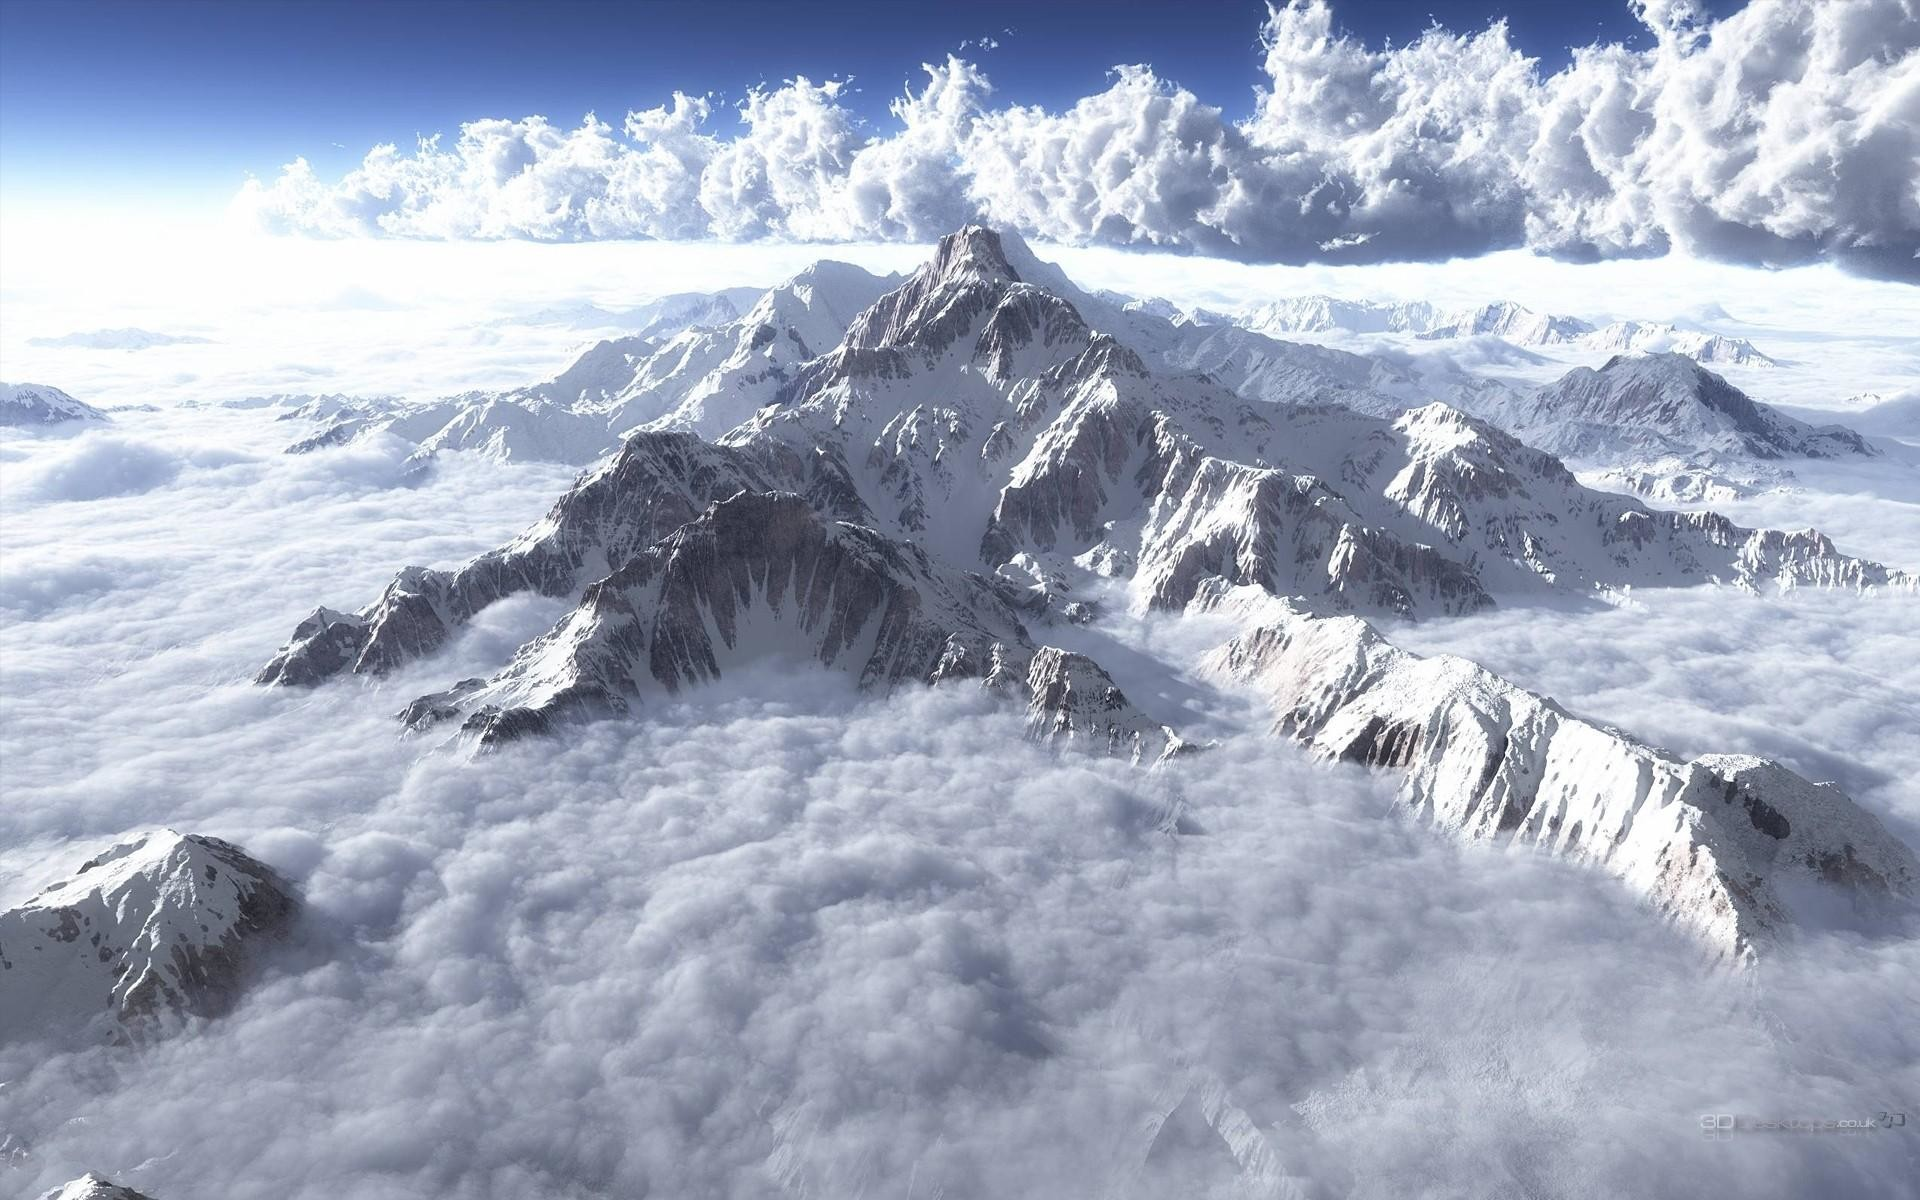 Mount Everest Wallpaper (64+ images)